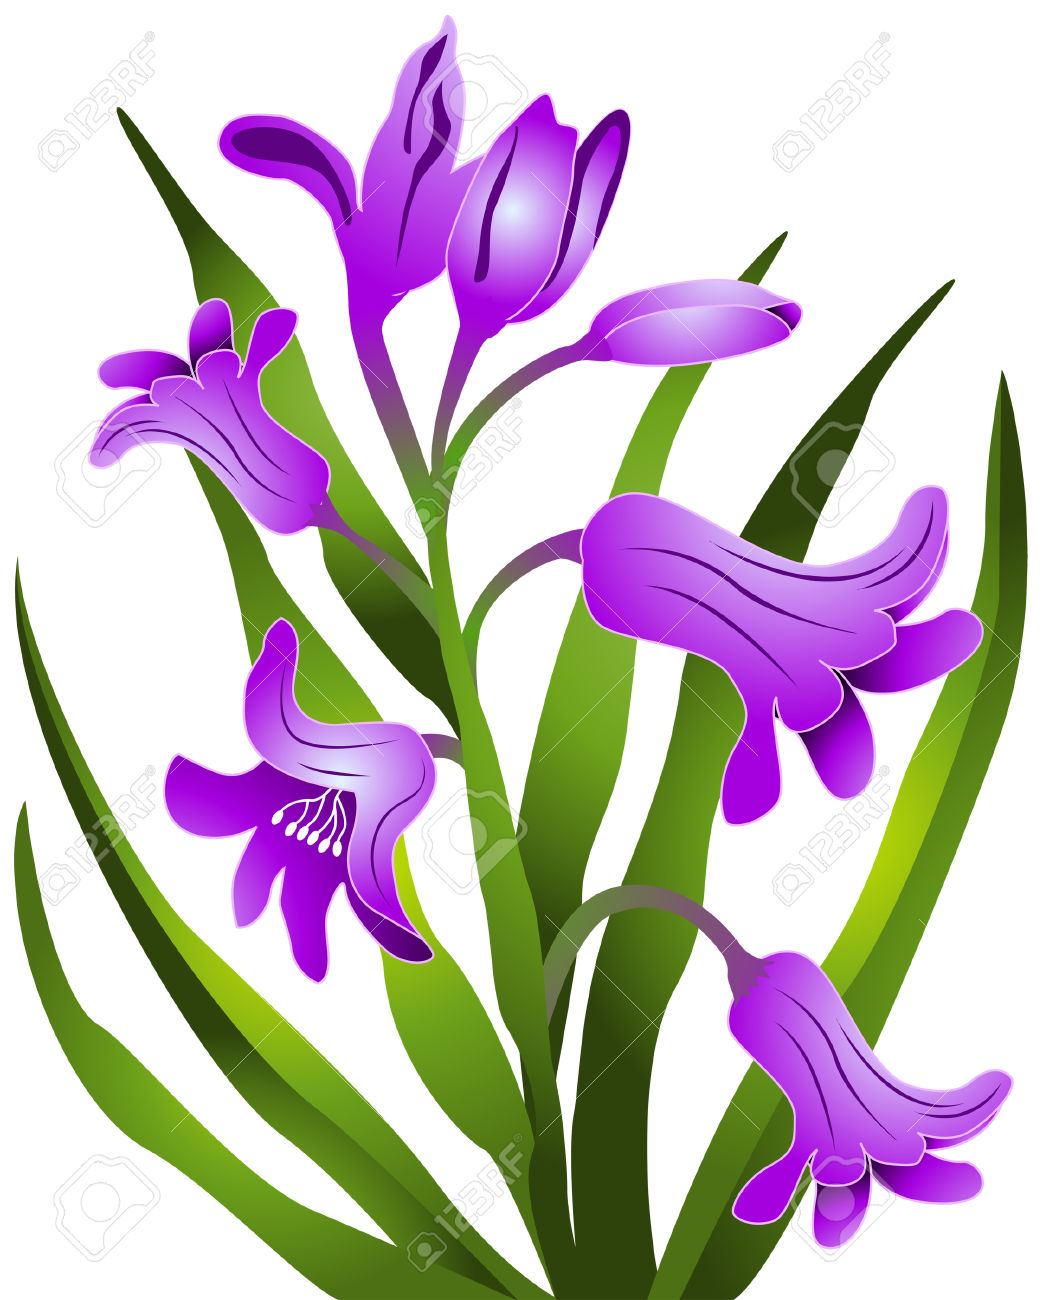 Hyacinth Flowers With Clipping Path Royalty Free Cliparts, Vectors.